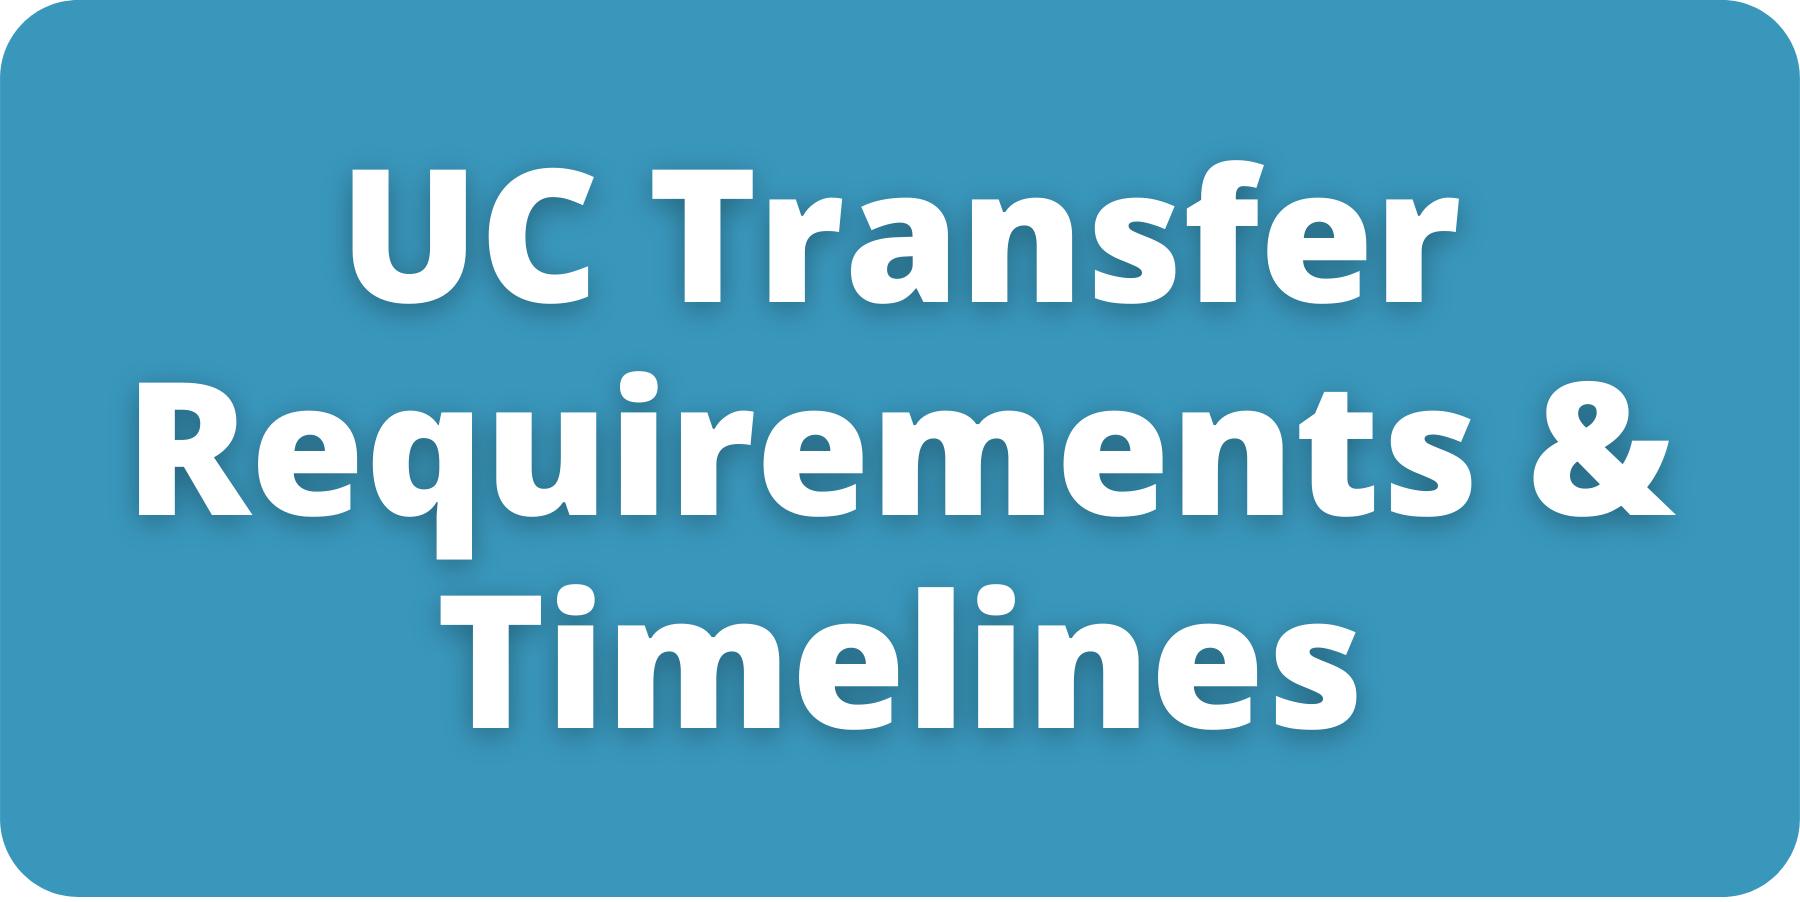 UC Requirements and Timelines